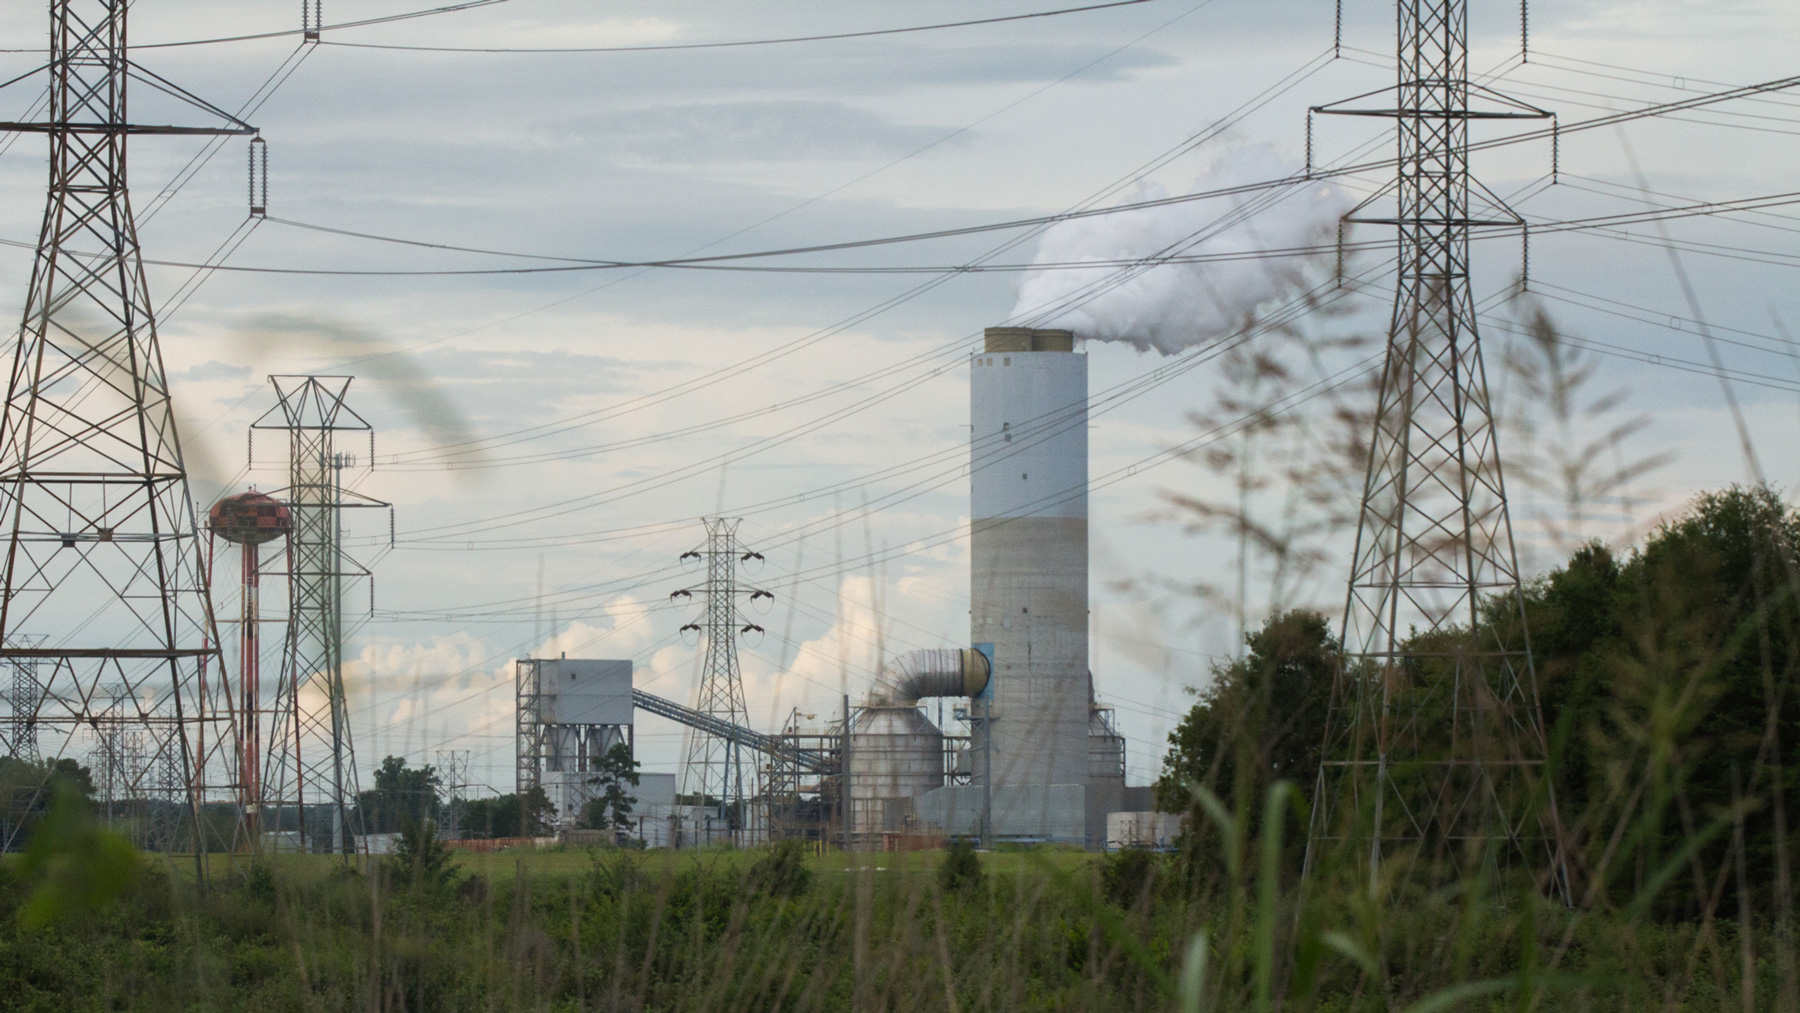 Residents living near Duke Energy's G.G. Allen Steam plant in Belmont, N.C., received letters from the North Carolina Department of Environmental Quality in 2015 telling them their well water had high levels of contaminants. (Chelsea Rae Ybanez/News21)